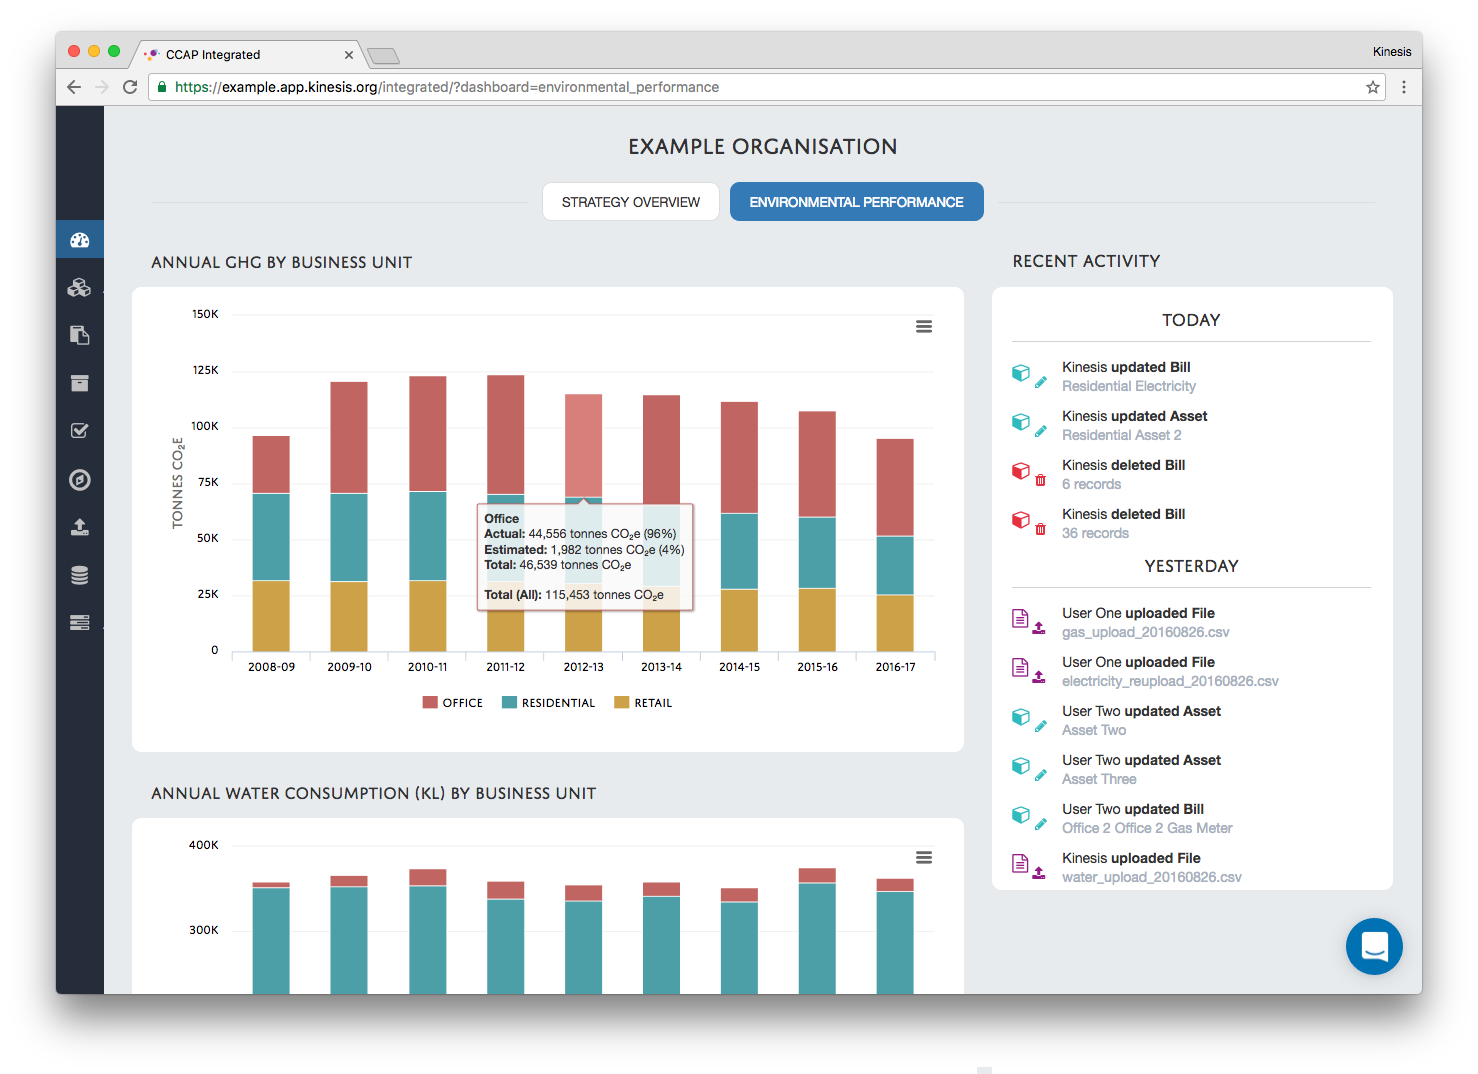 View the performance of your organisation in a single location